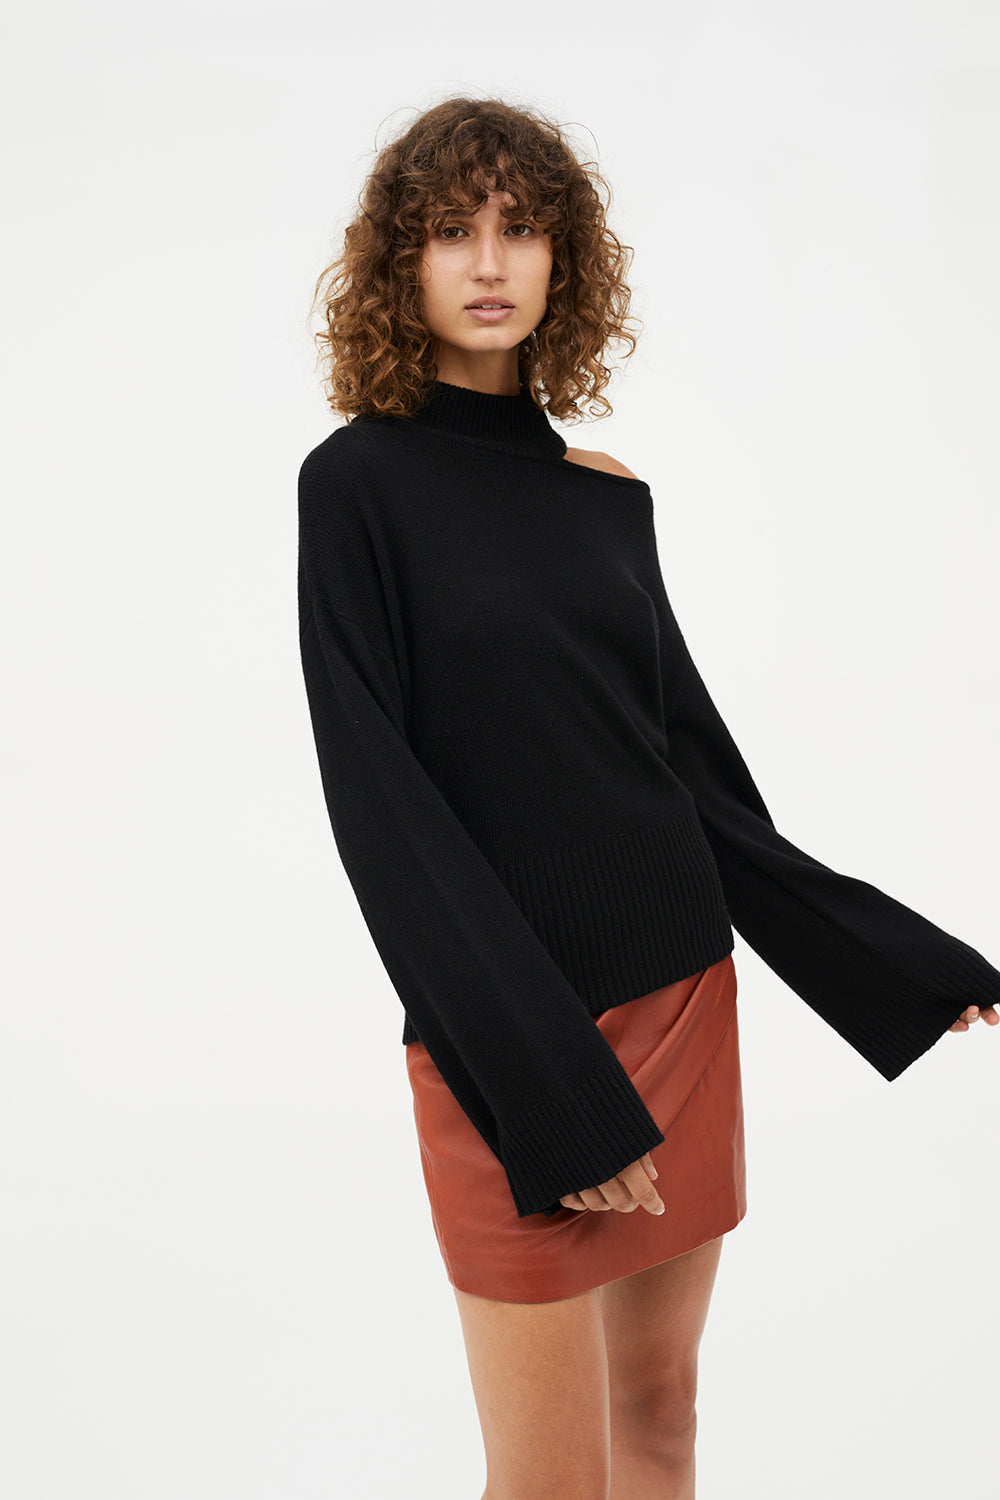 POINT OF ORIGIN KNIT JUMPER